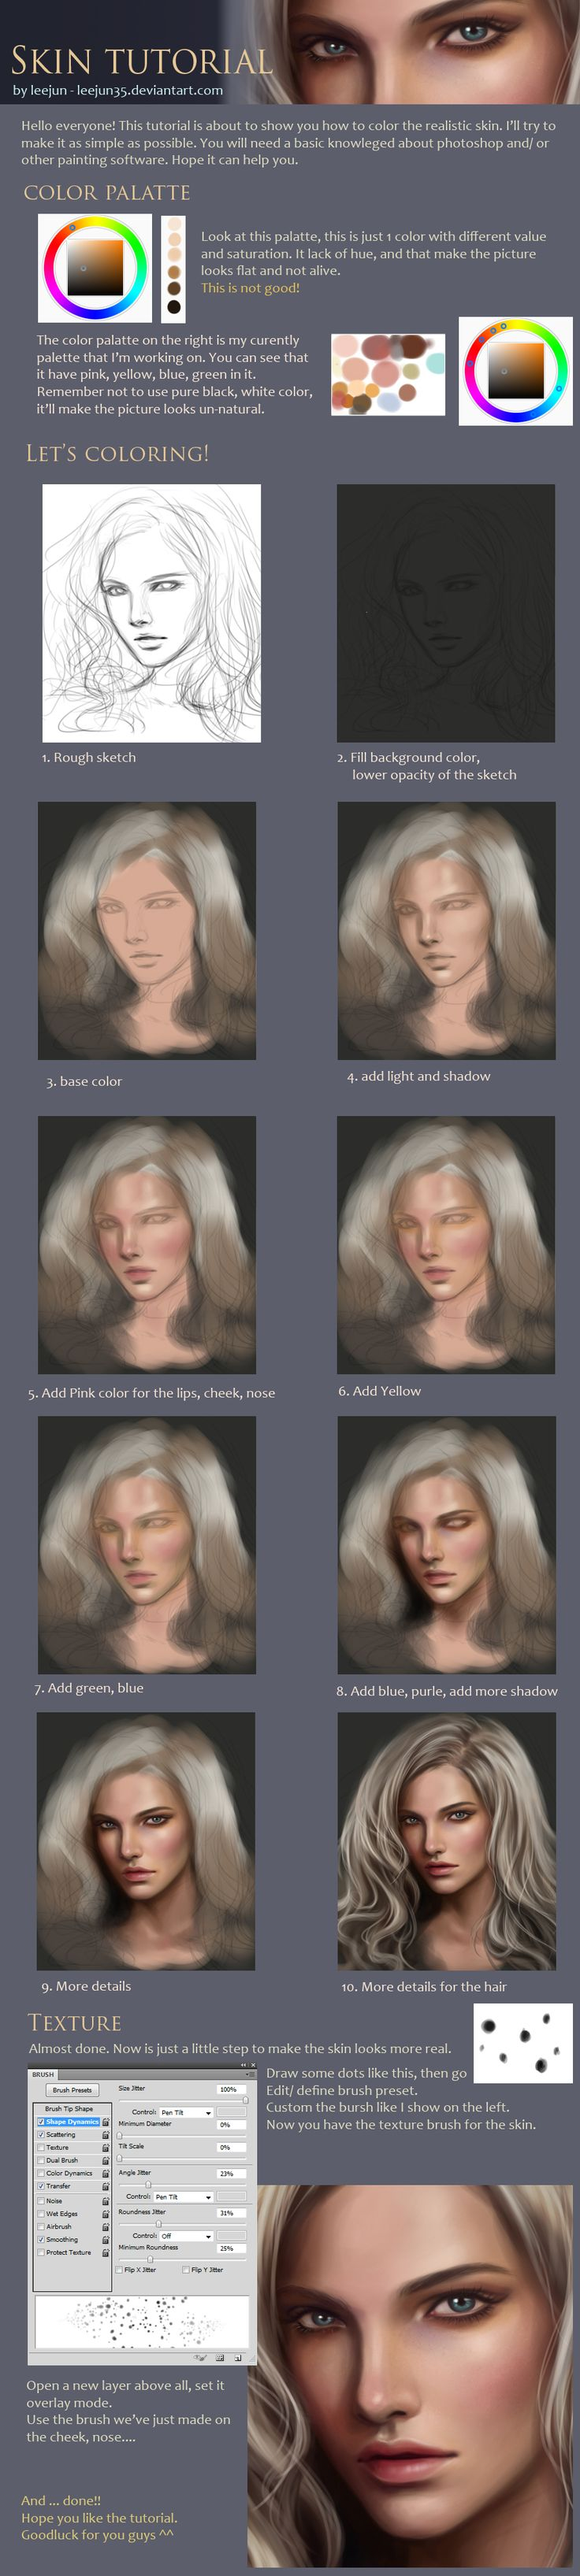 skin tutorial by leejun35 on deviantART